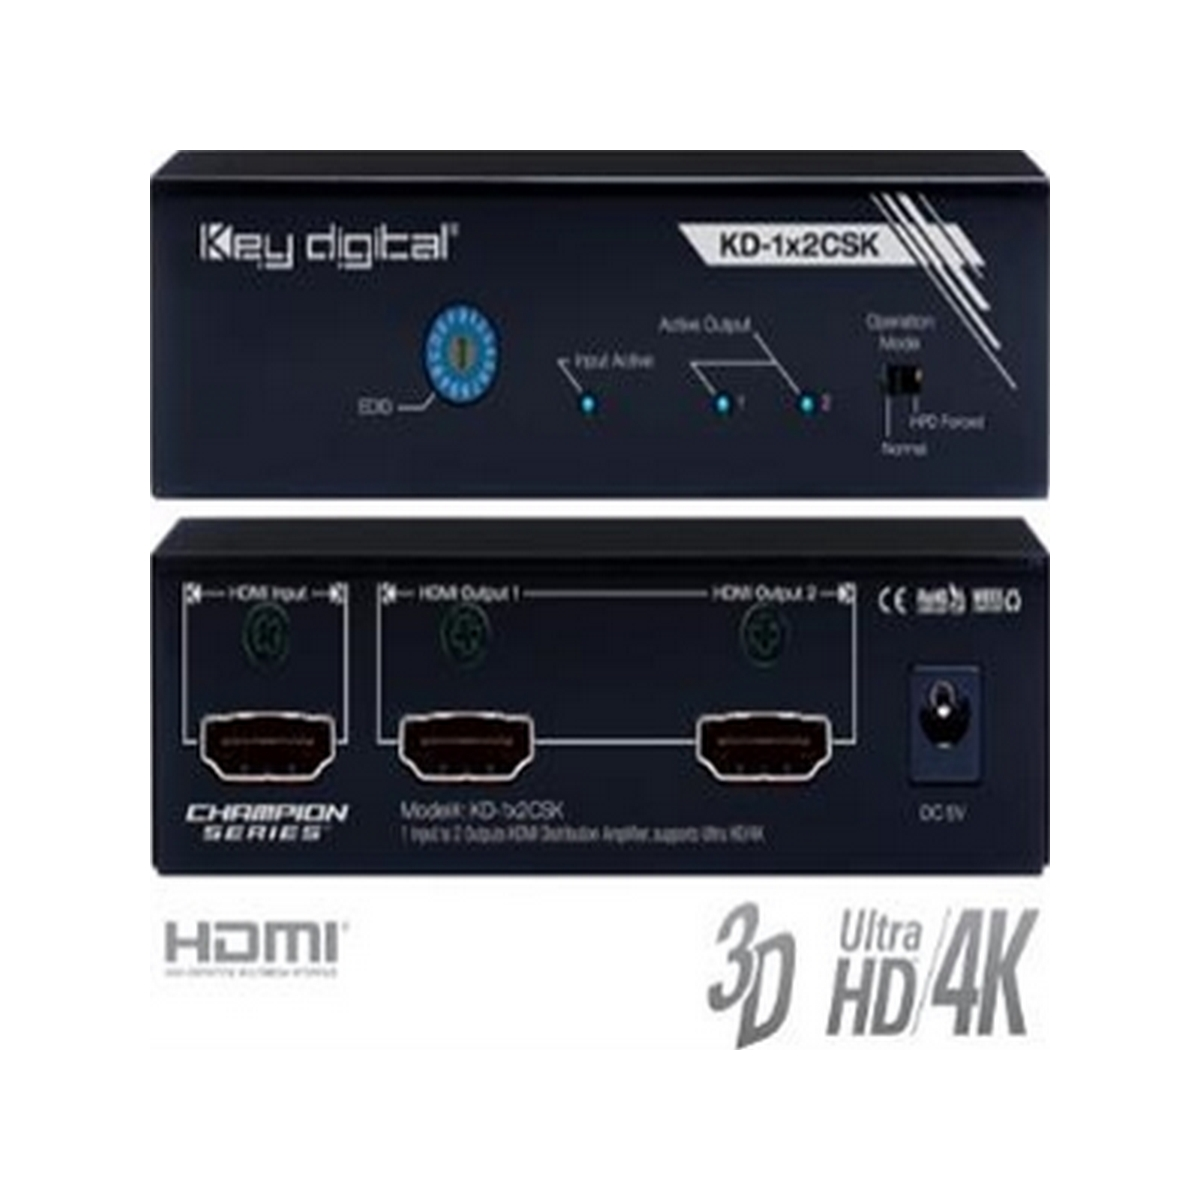 Key Digital KD-1x2CSK 1 Input to 2 Outputs HDMI Distribution Amplifier, Supports Ultra HD/4K